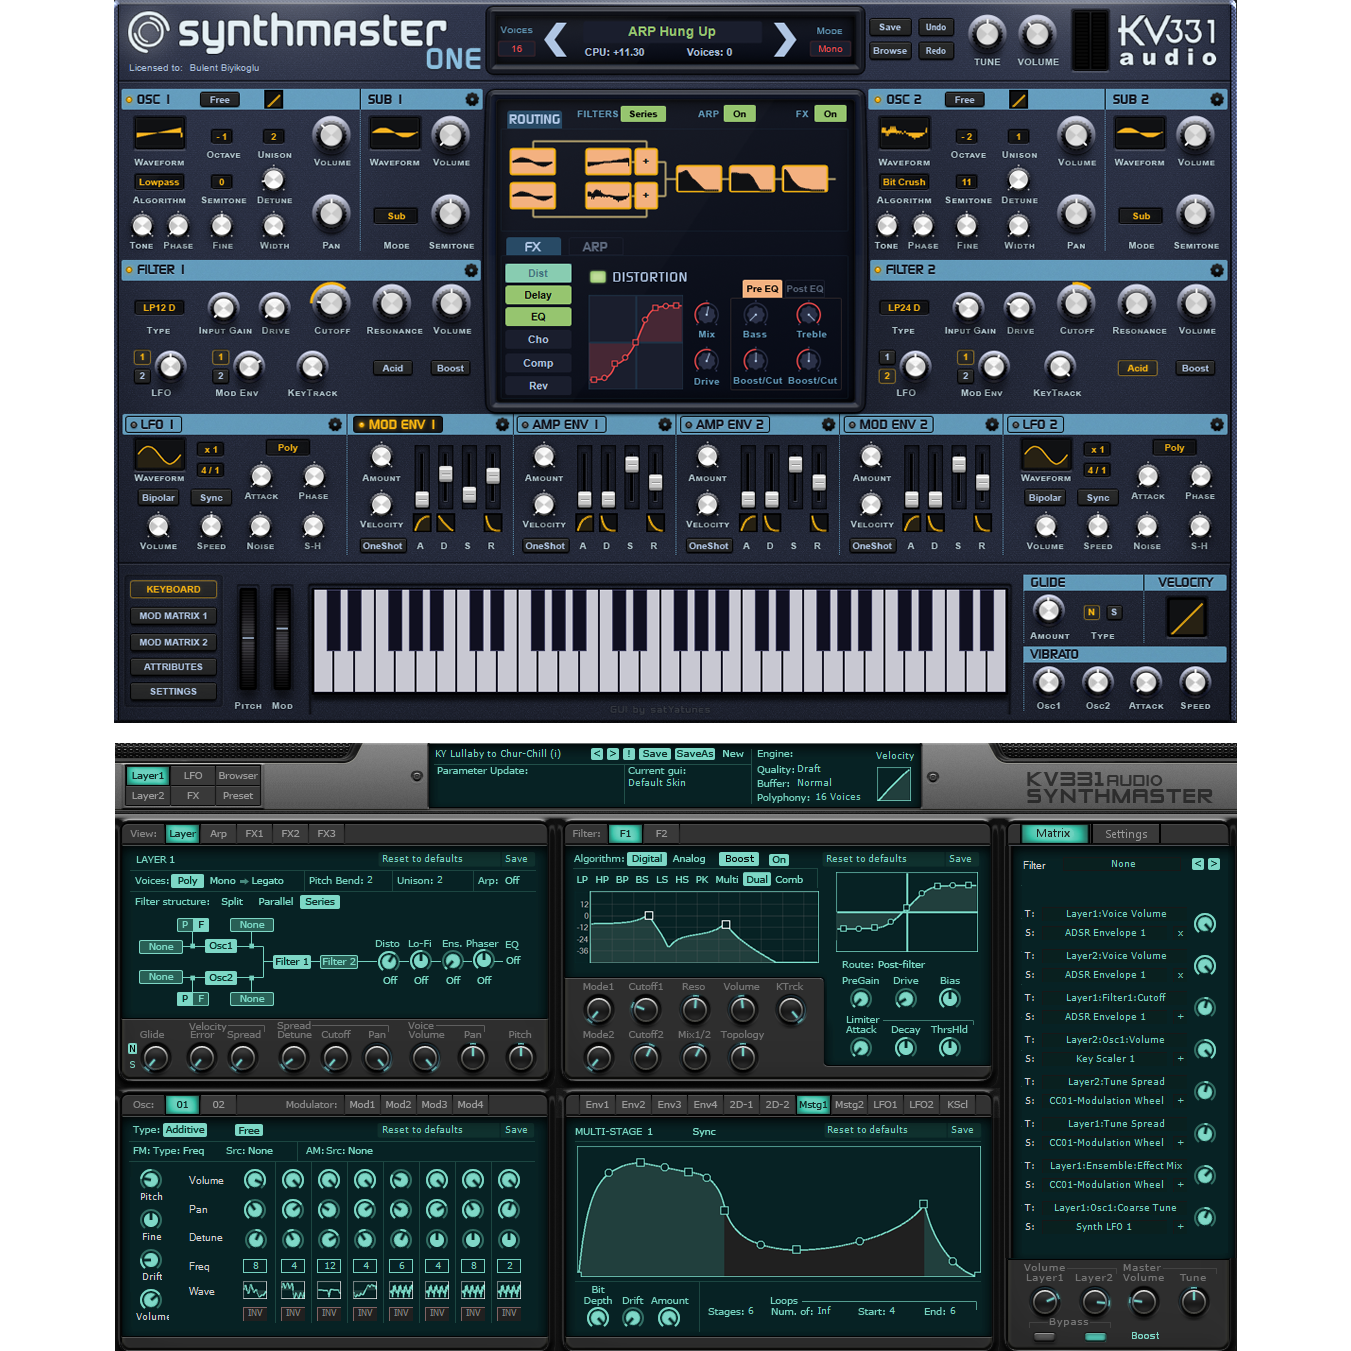 KV331 Audio Synthmaster One & Synthmaster 2 Bundle Virtual Instruments PluginFox